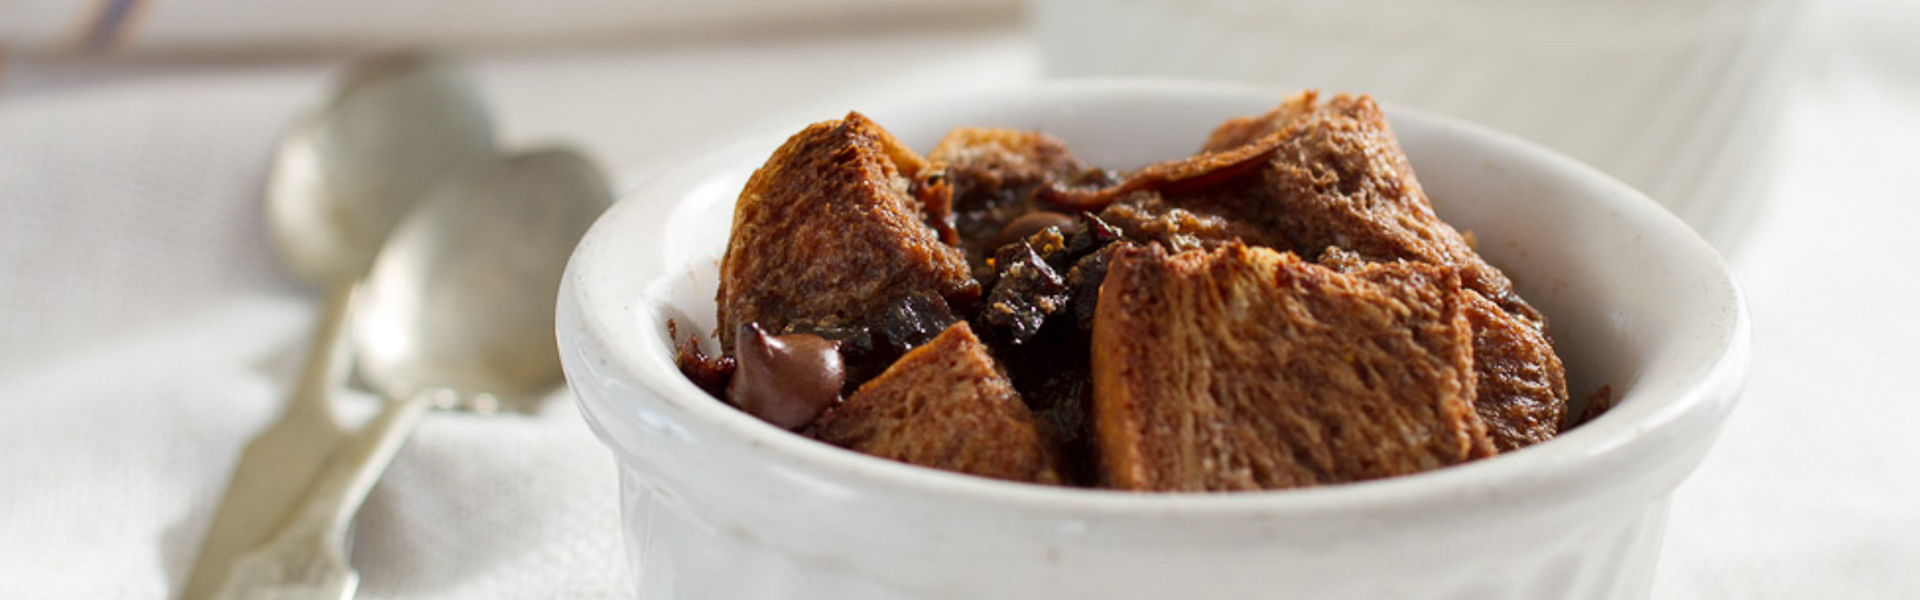 <p>Studded with prunes and chocolate and gently flavored with orange zest, this bread pudding stands out from similar recipes. Serve it alone or with crème fraîche.</p>